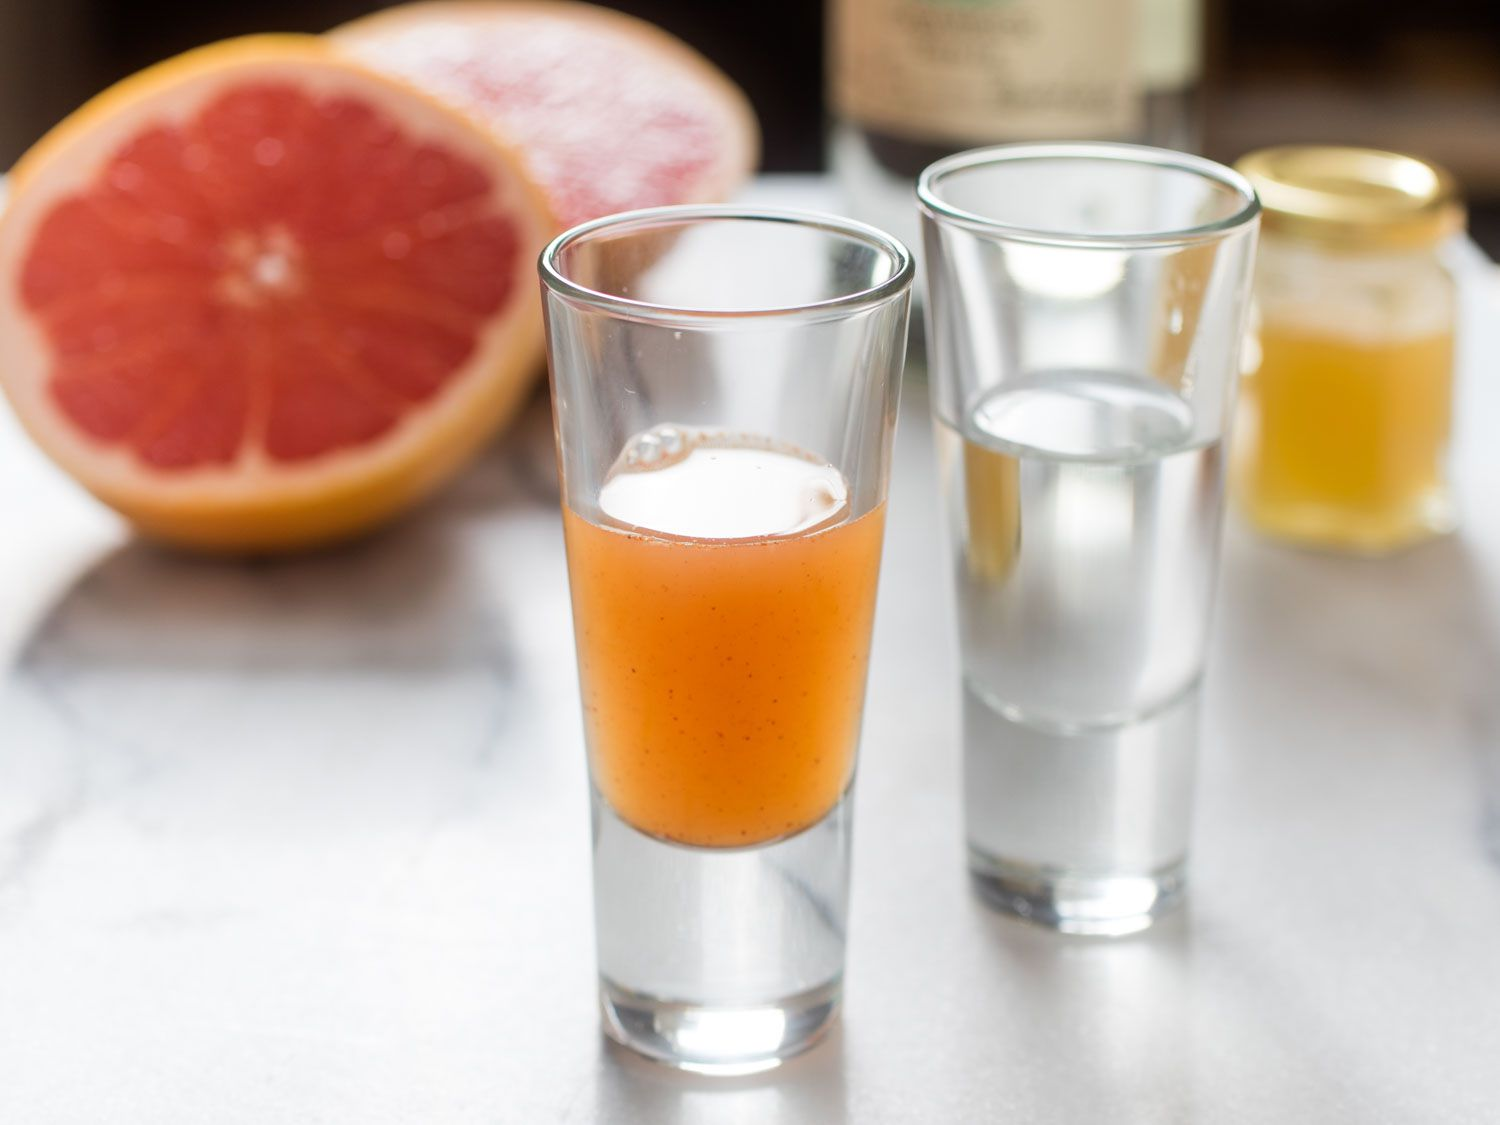 A shot glass of grapefruit-chipotle-honey sangrita, with a shot of tequila in the background